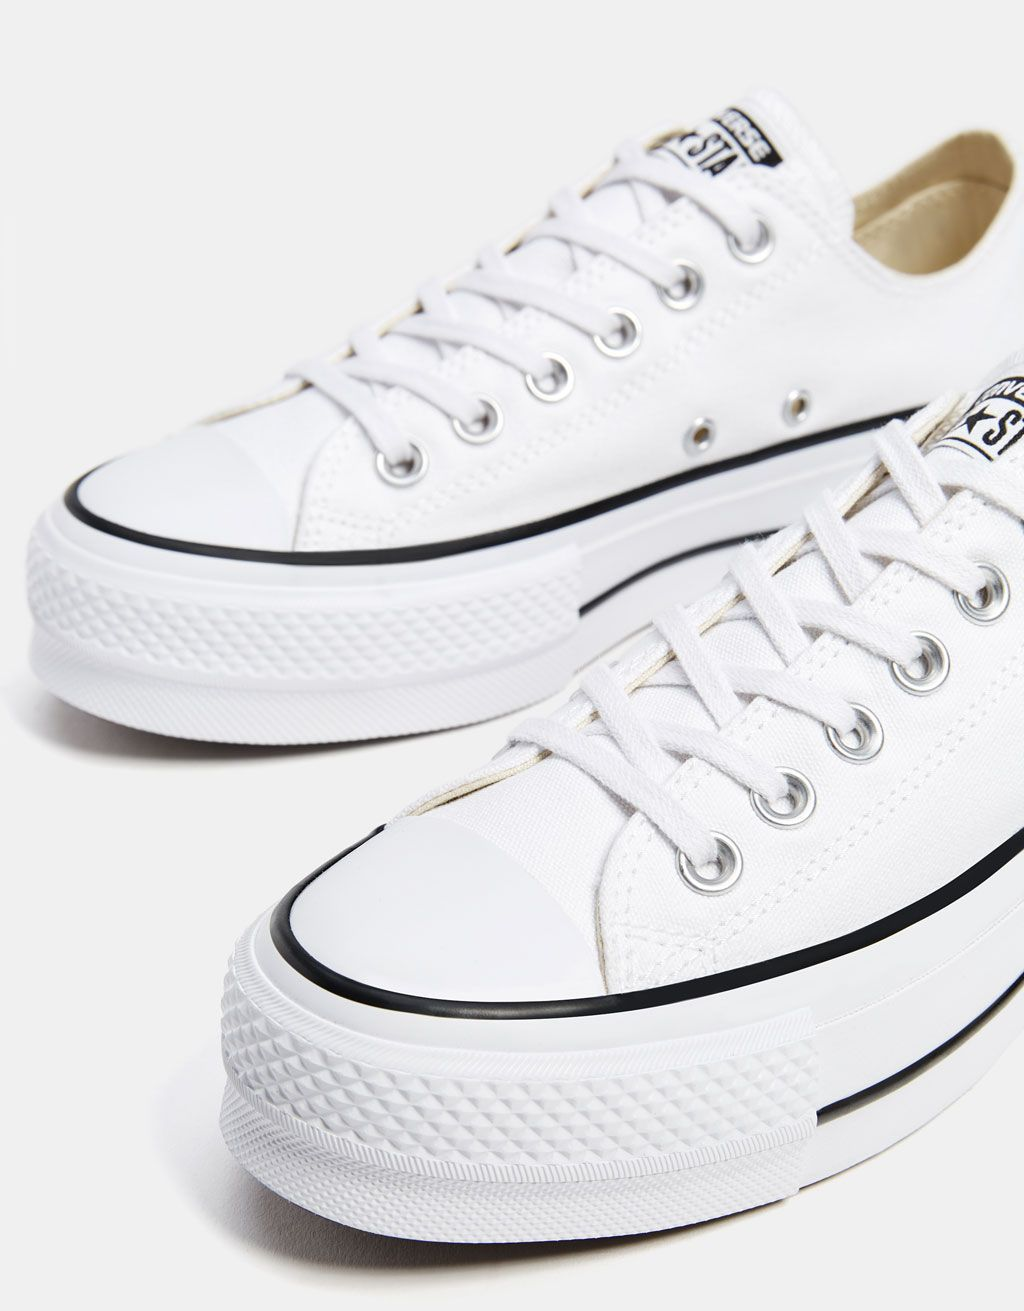 81aaf7bfaf9 CONVERSE CHUCK TAYLOR ALL STAR platform sneakers - Bershka  fashion   product  converse  allstar  sneakers  trainers  white  canvas  zapatillas   lona ...